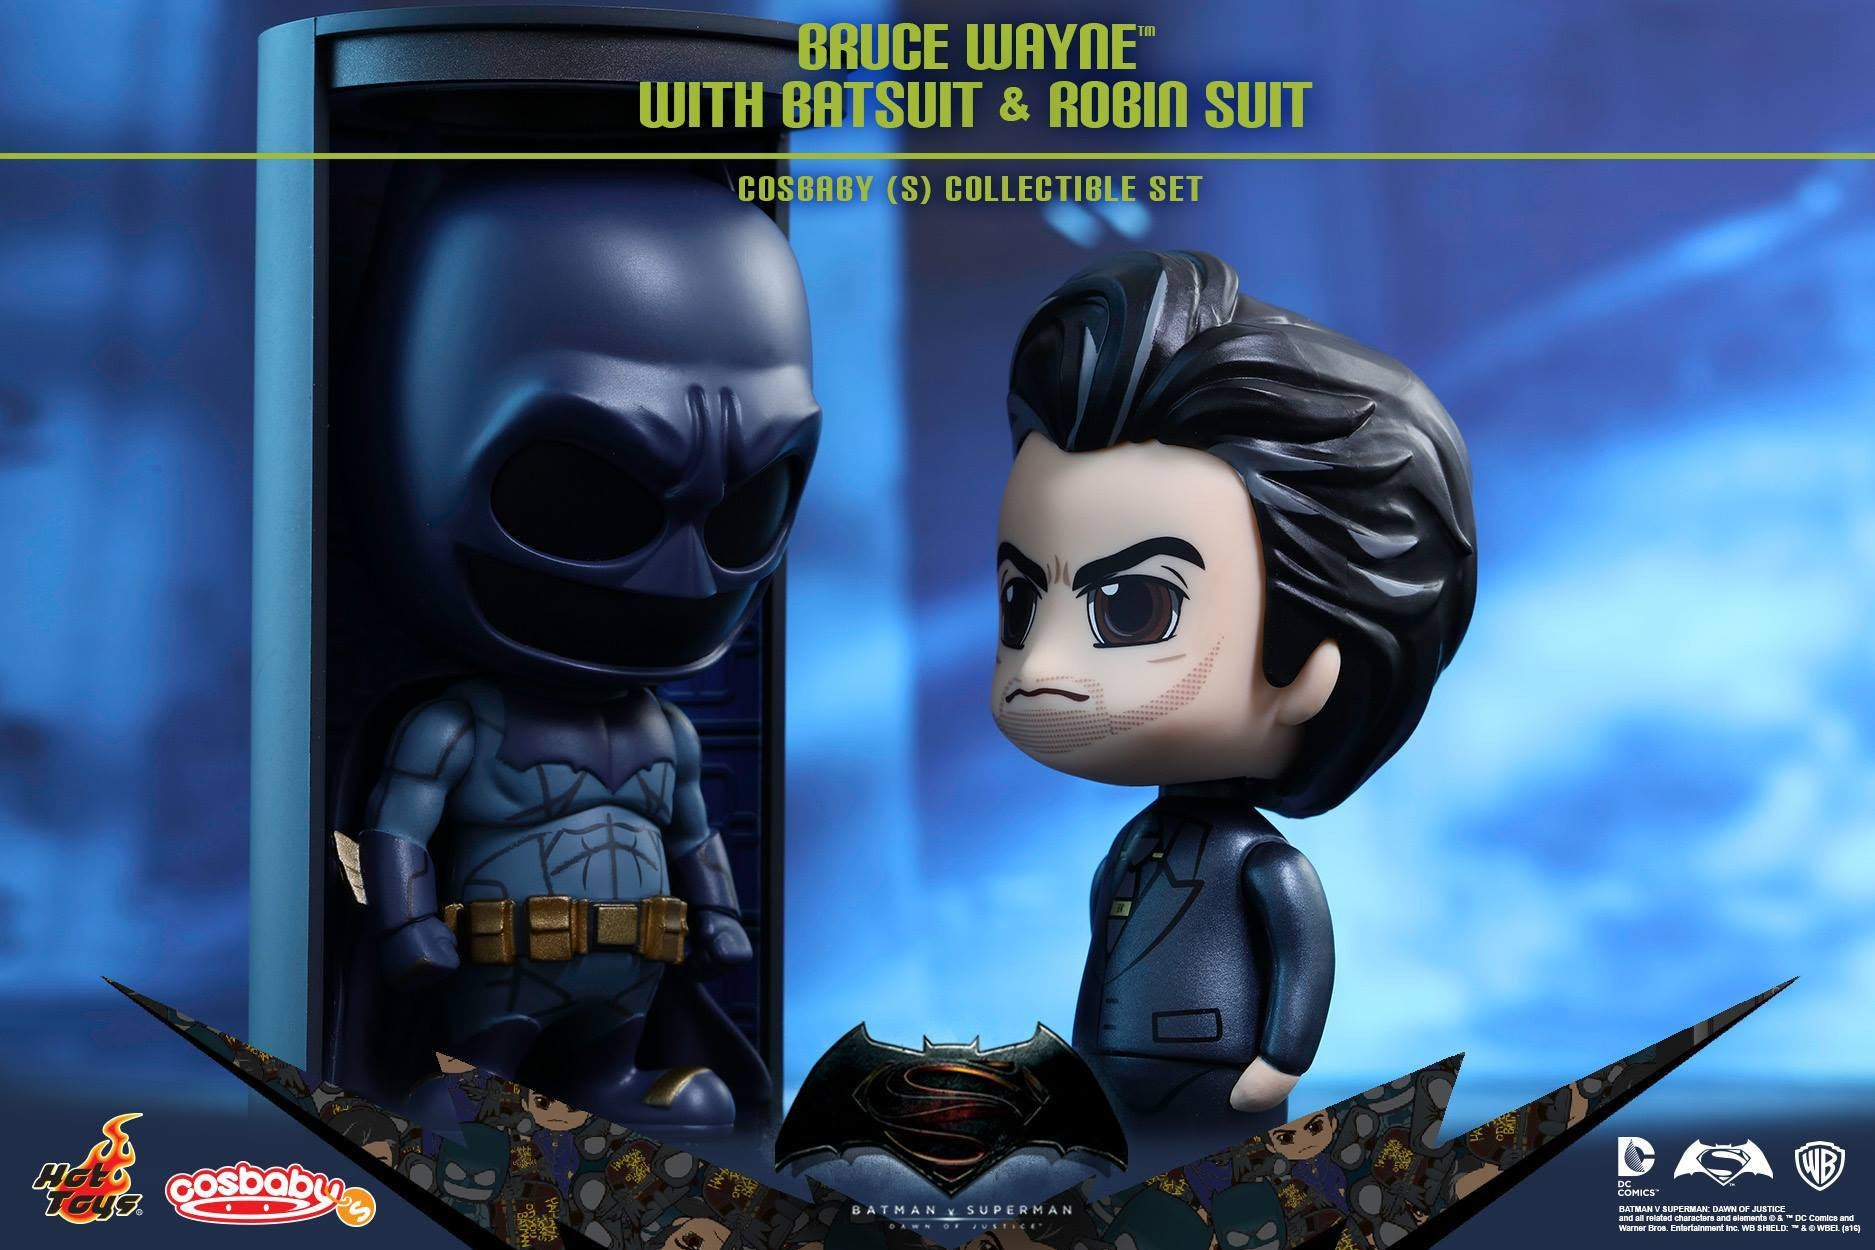 Hot Toys - COSB245 - Batman v Superman Dawn of Justice - Bruce Wayne with Batsuit and Robin Suit Cosbaby (S) Collectible Set - Marvelous Toys - 3